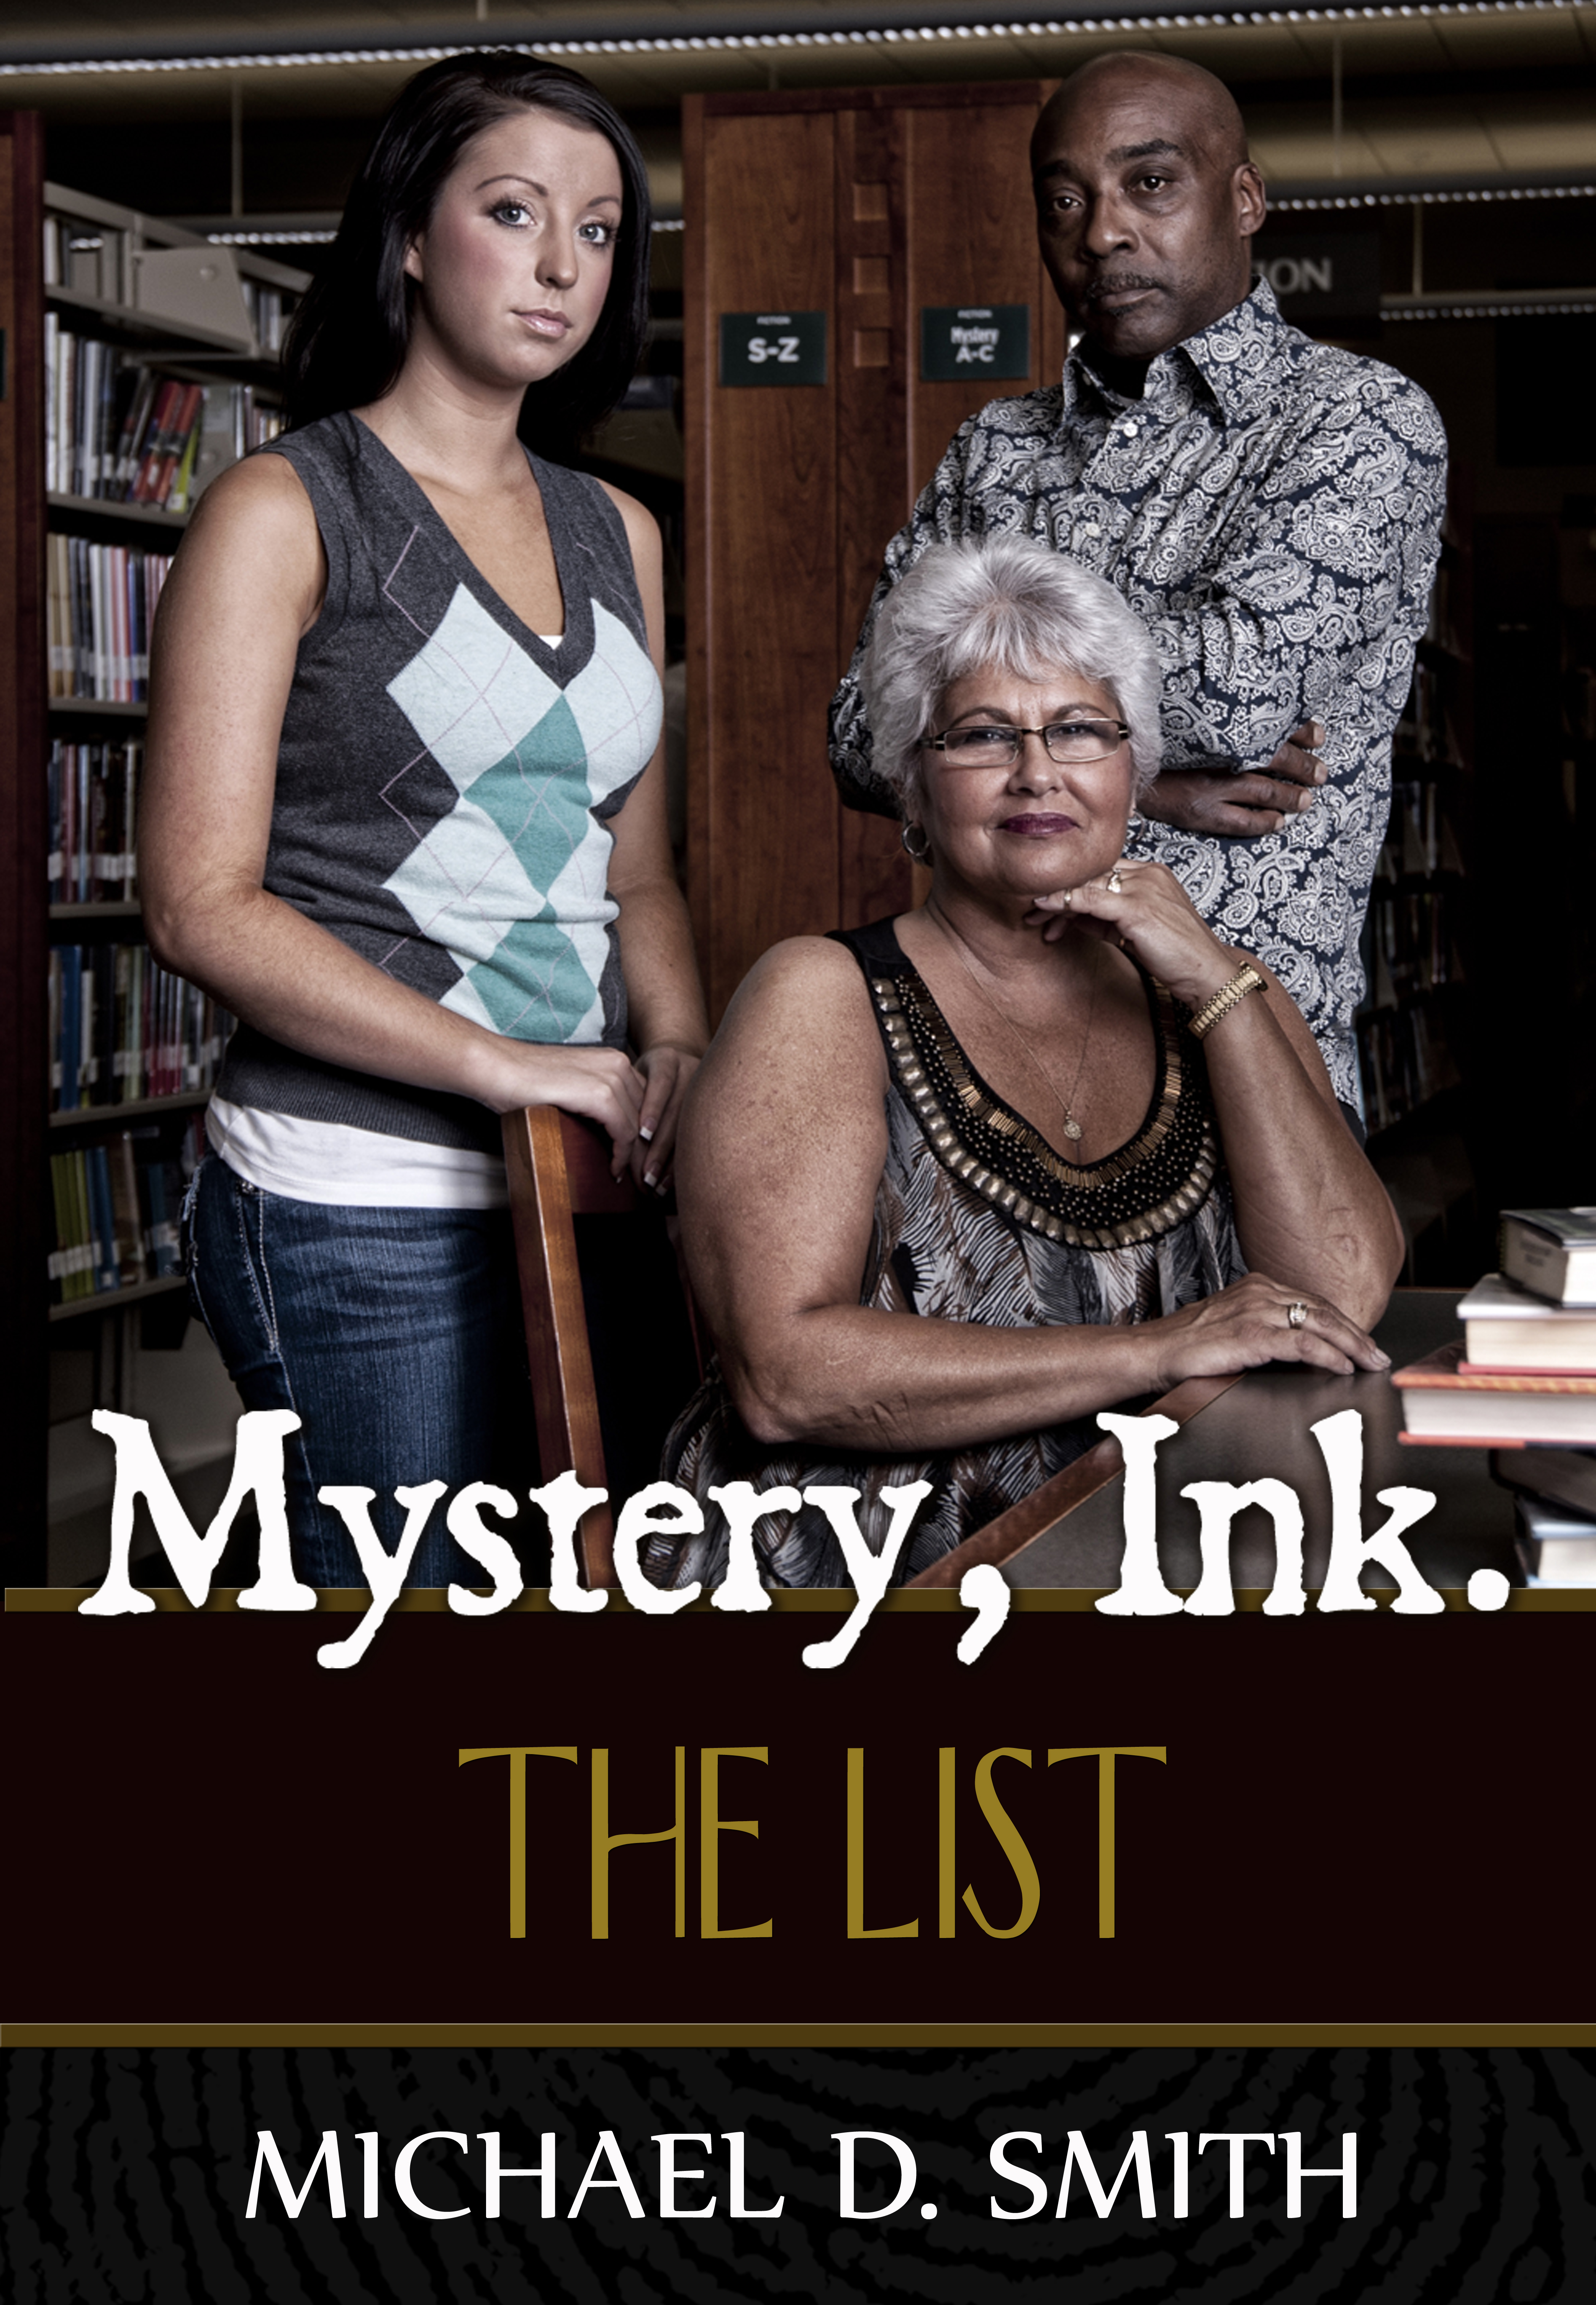 Mystery, Ink.: The List